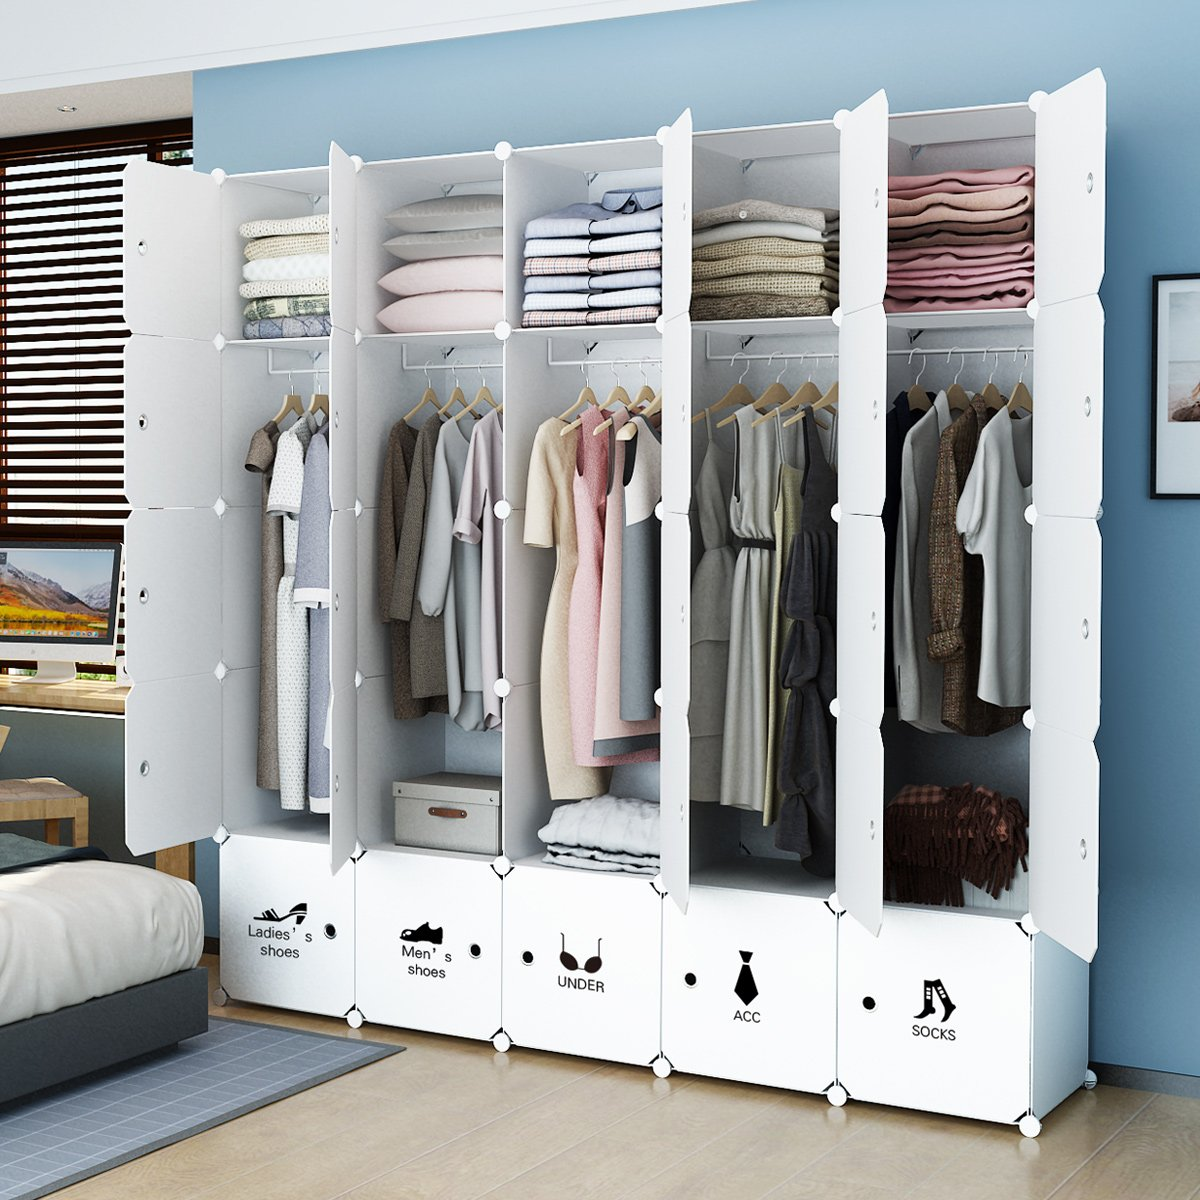 KOUSI Portable Closet Clothes Wardrobe Bedroom Armoire Storage Organizer with Doors, Capacious & Sturdy. 25 cube White